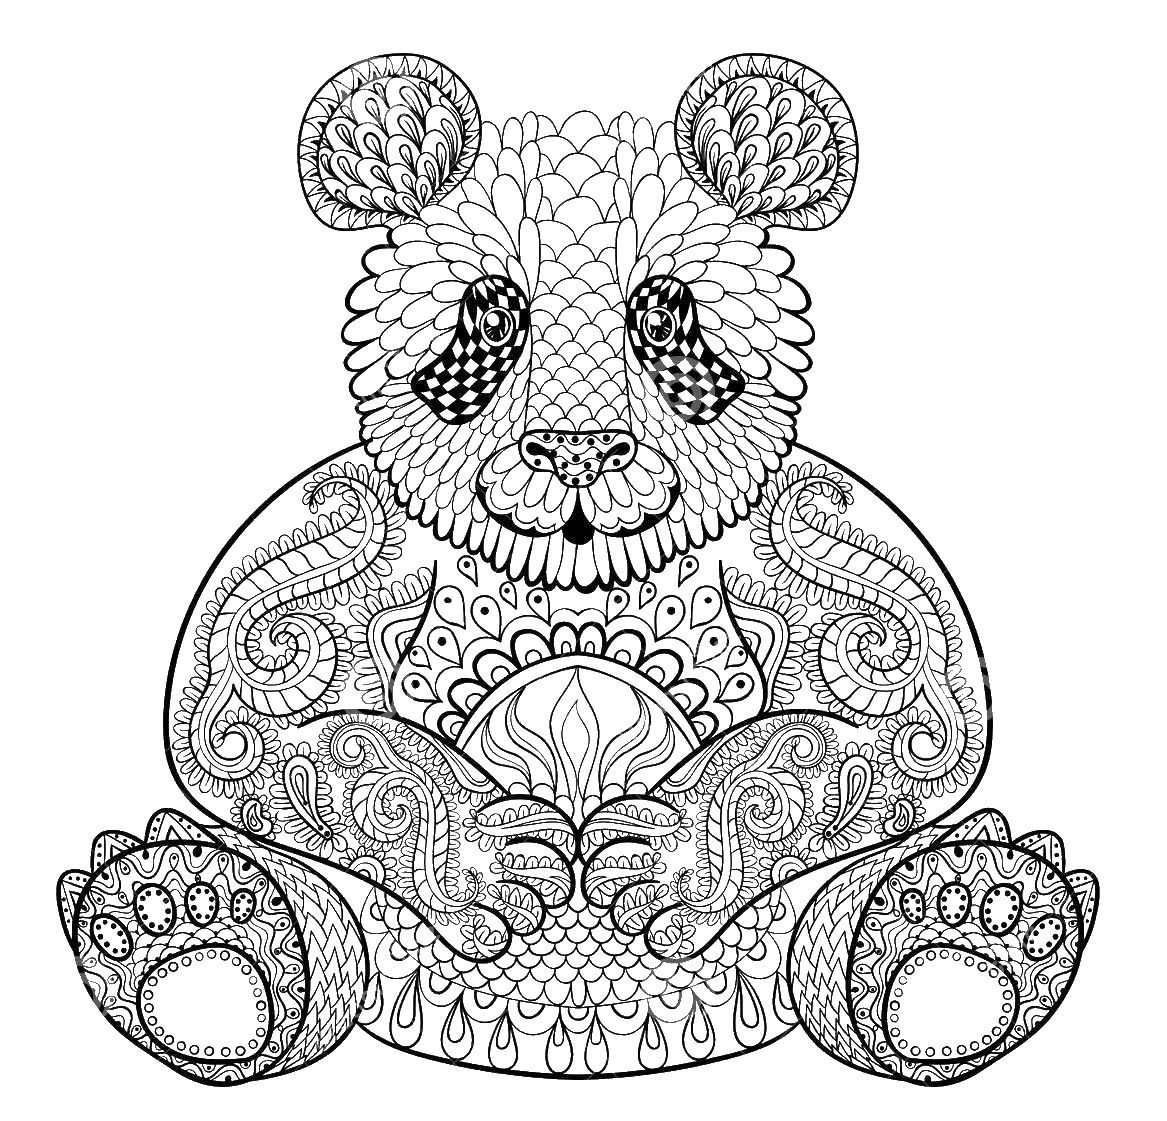 Epingle Sur Adult Coloring Pages And Zentangled Art For Grown Ups